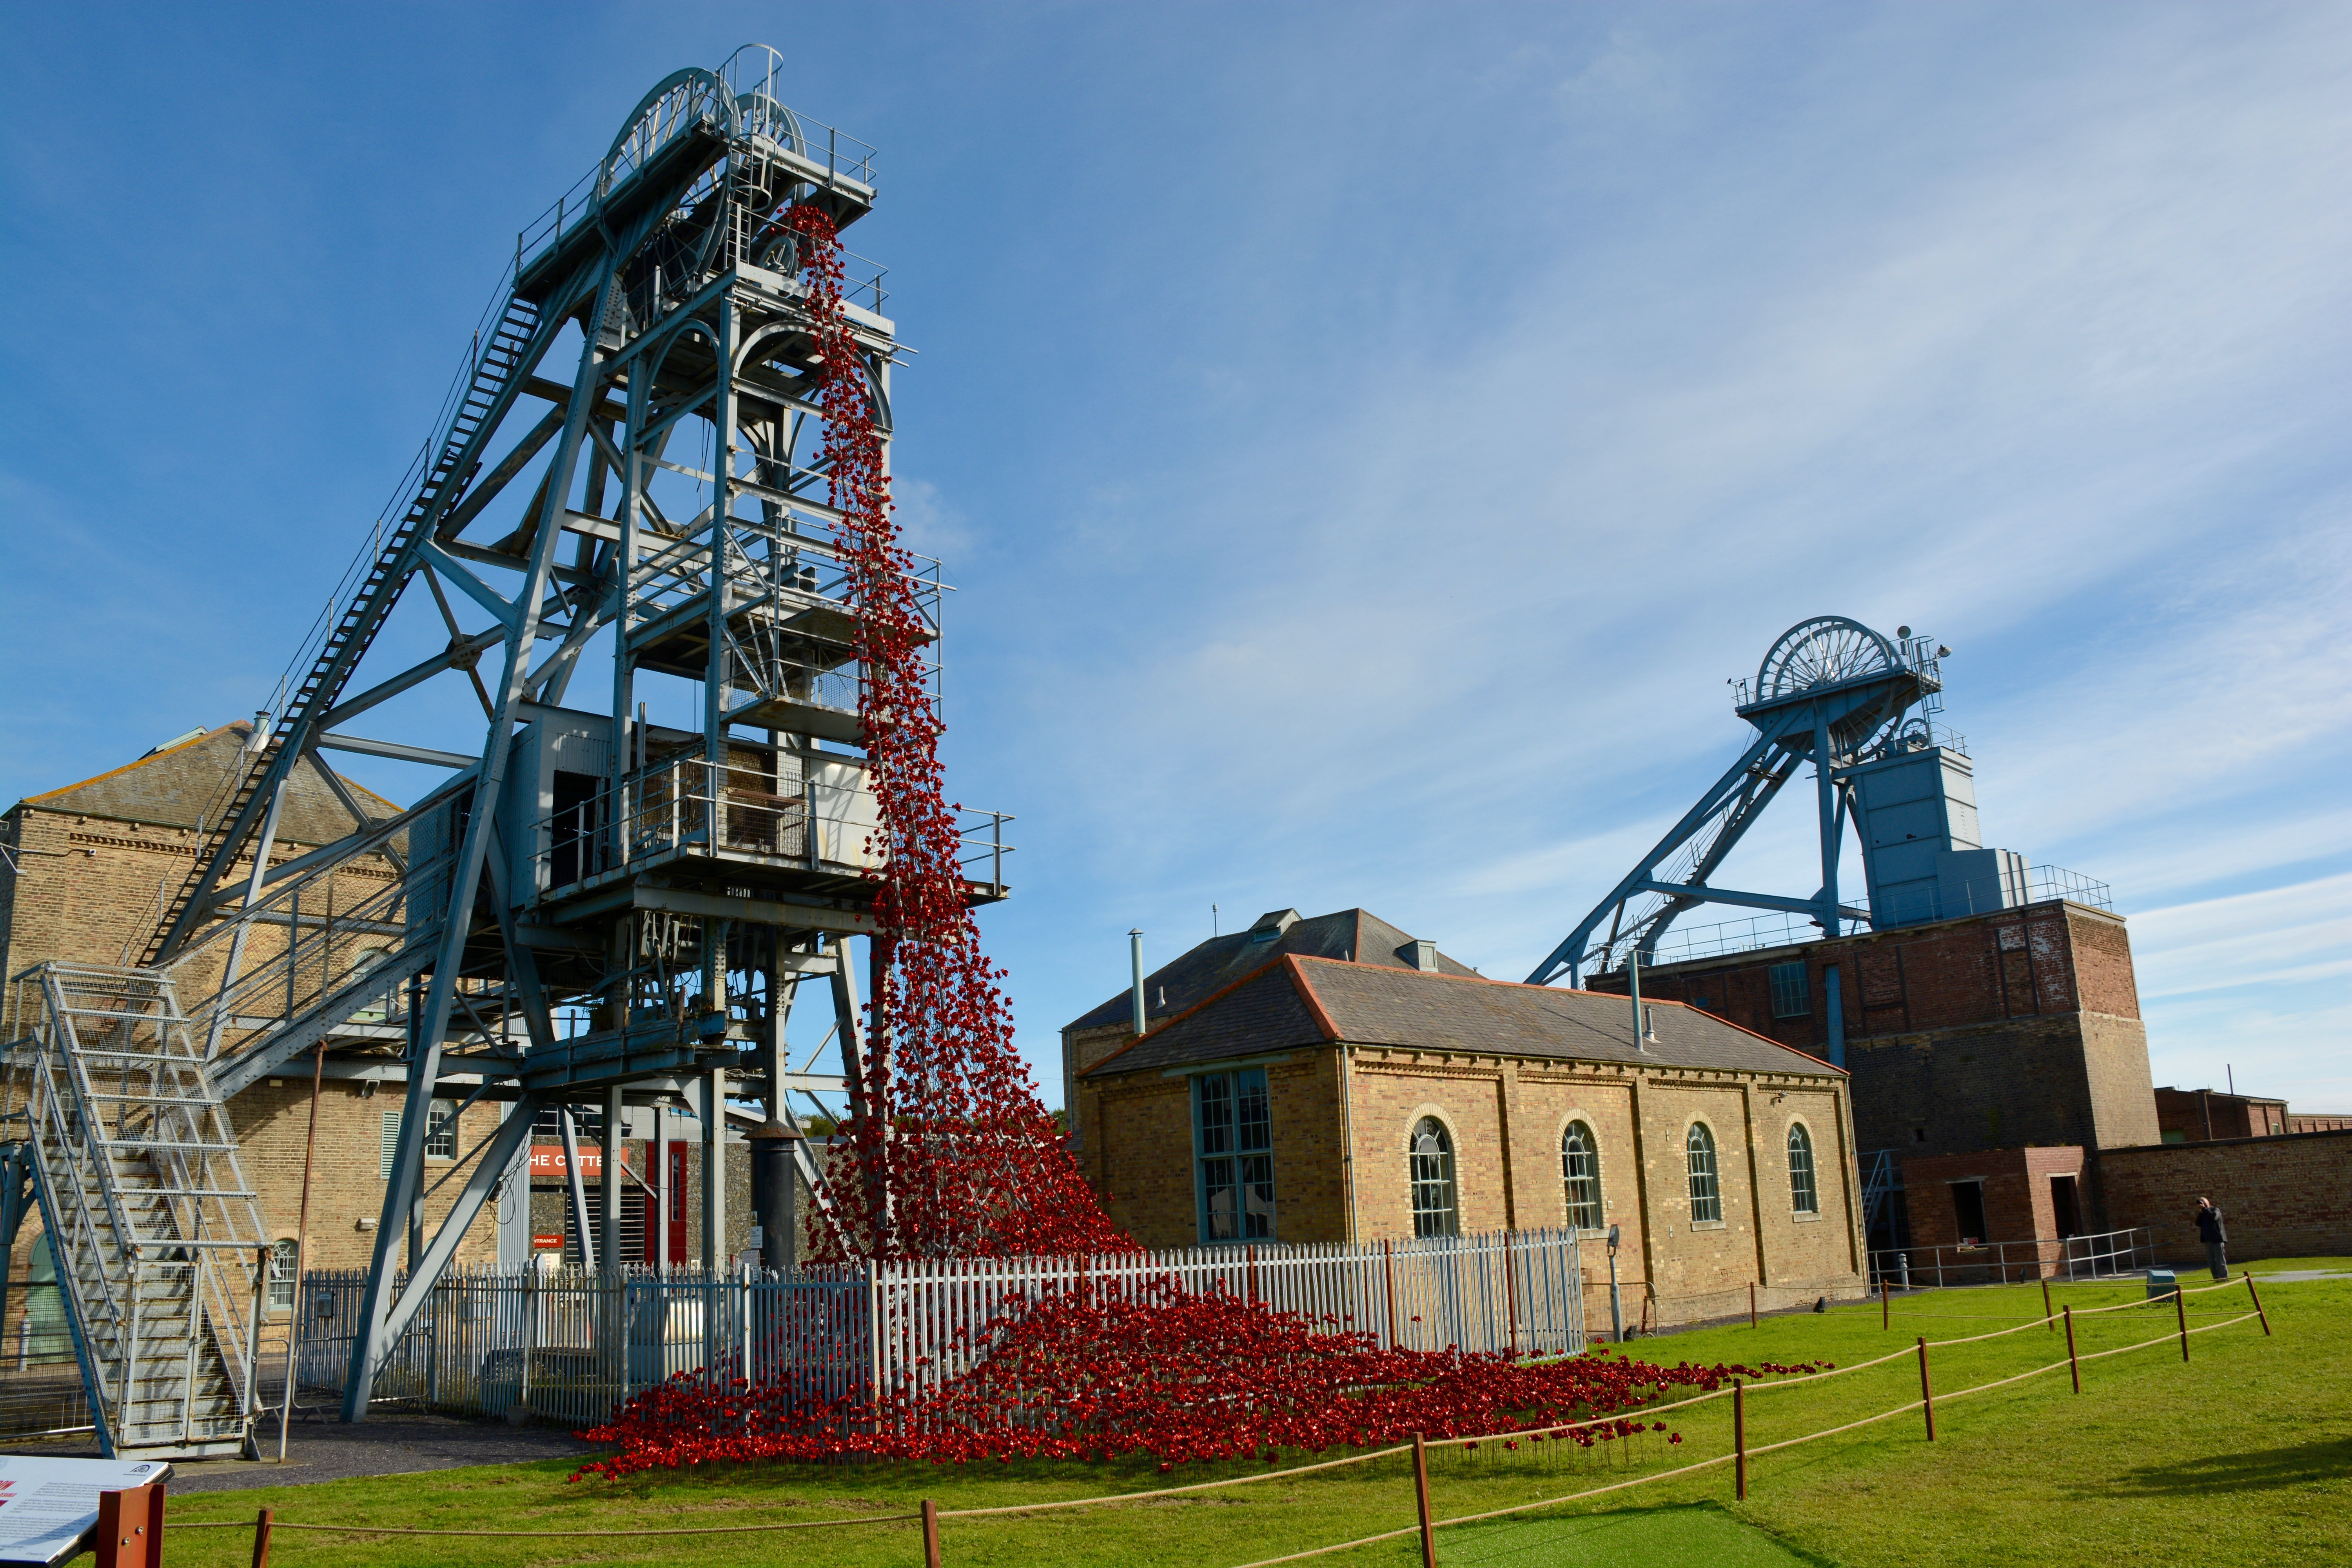 Woodhorn Colliery`s Poppies